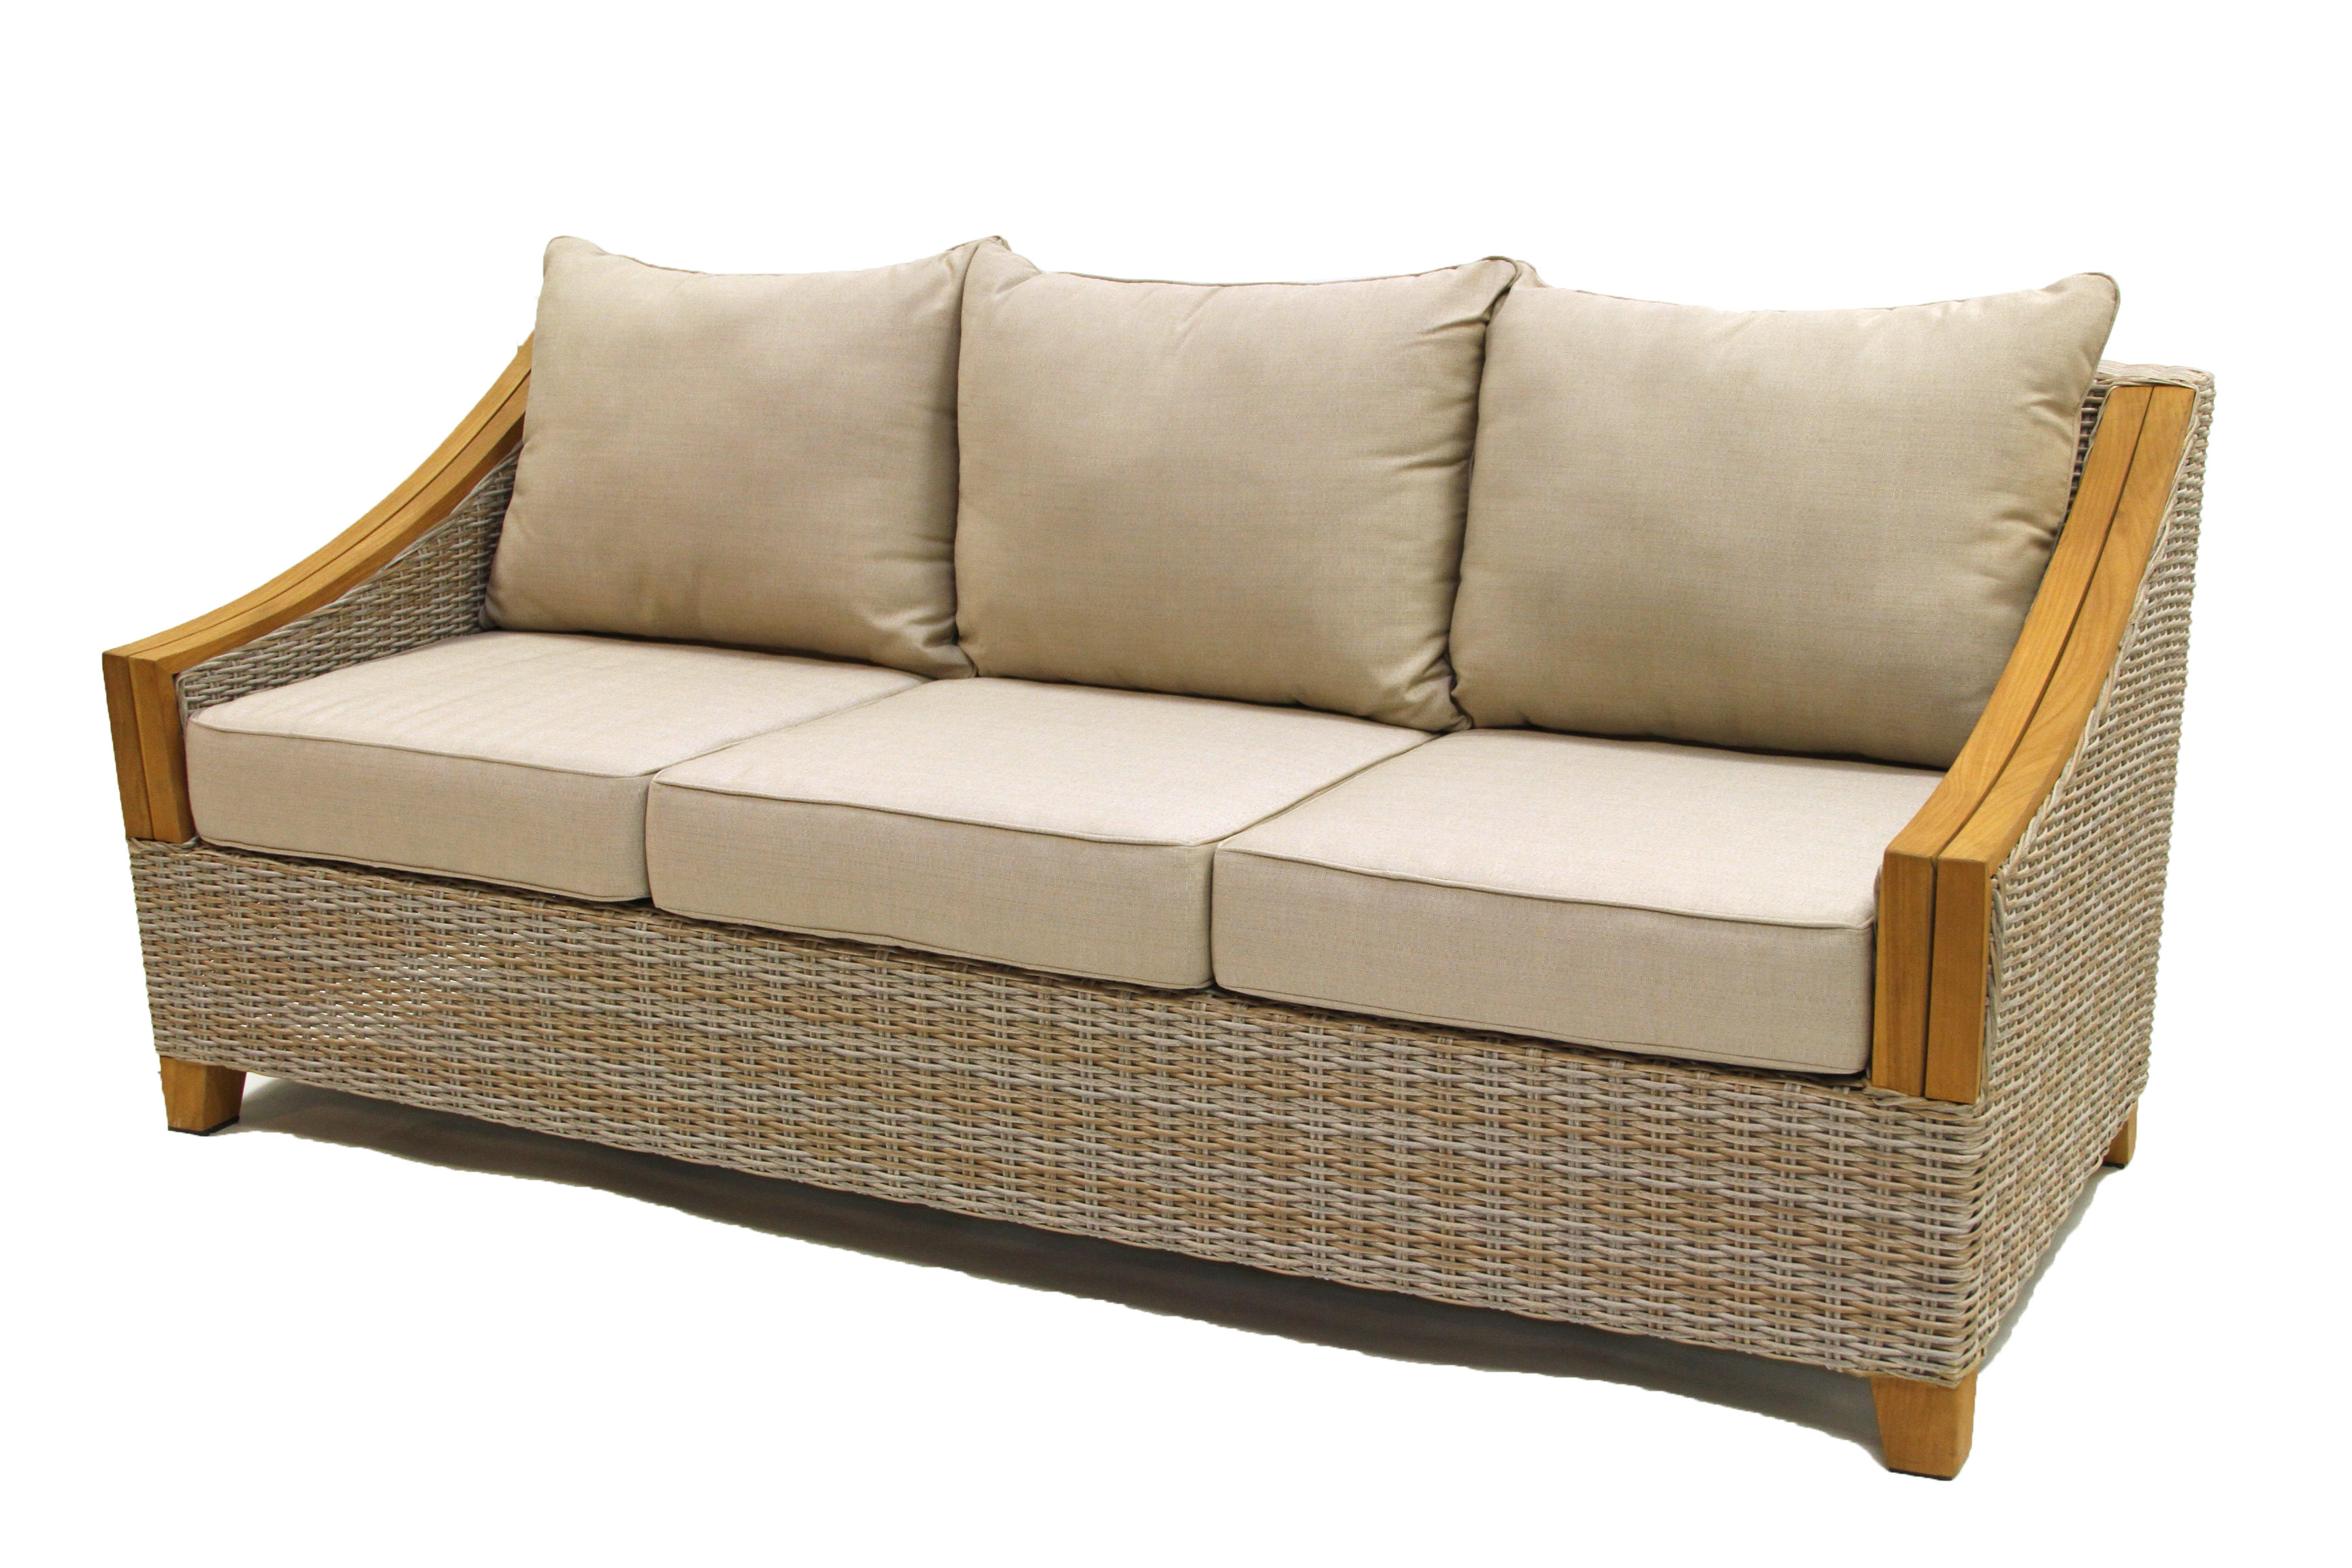 Summerton Teak Patio Sofas With Cushions Throughout Most Popular Kincaid Teak Patio Sofa With Sunbrella Cushions (View 17 of 20)